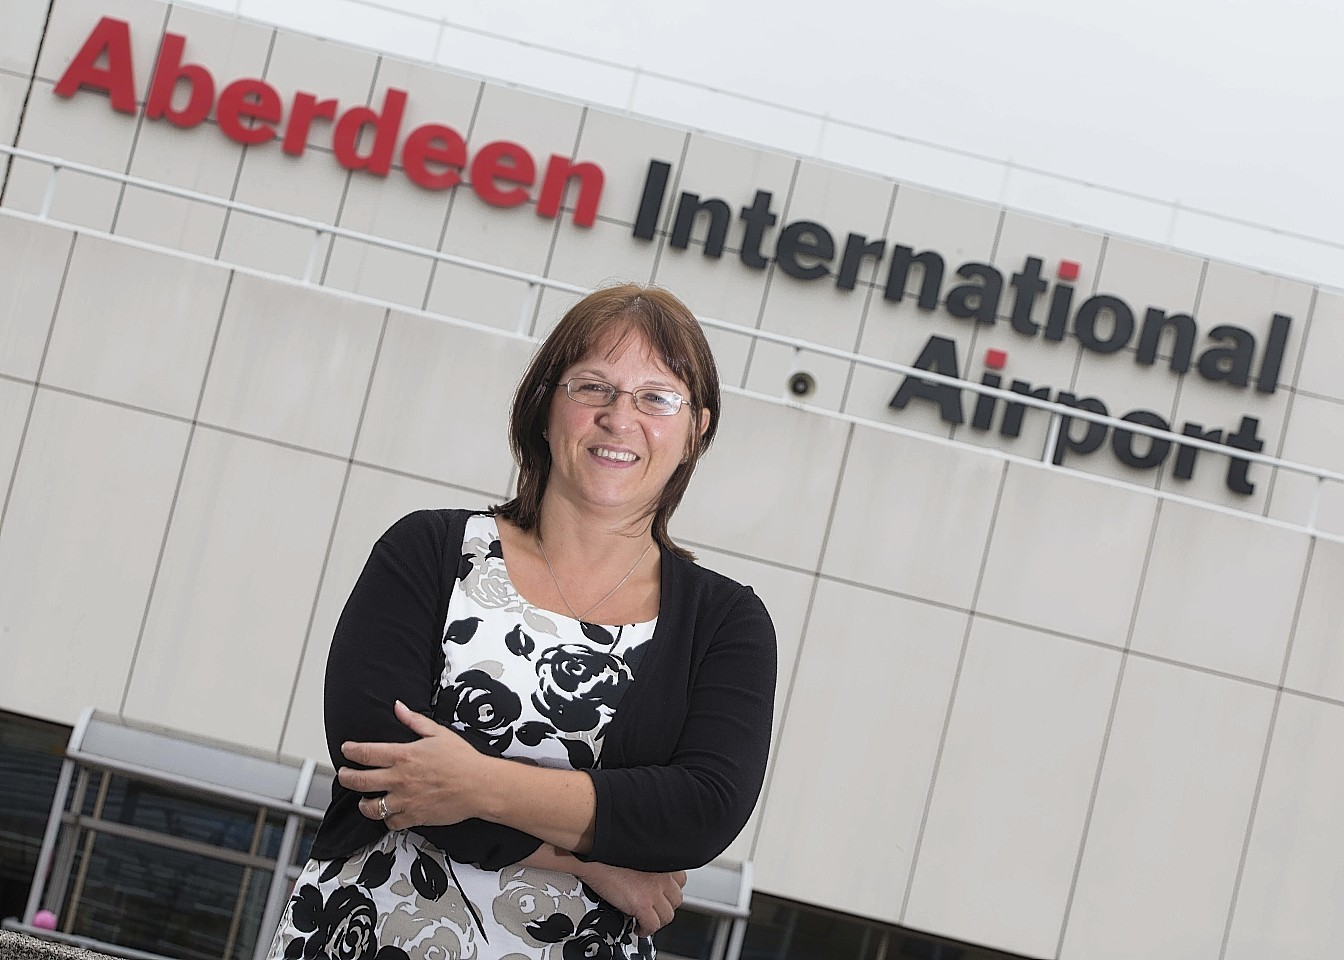 Carol Benzie, managing director of Aberdeen International Airport.